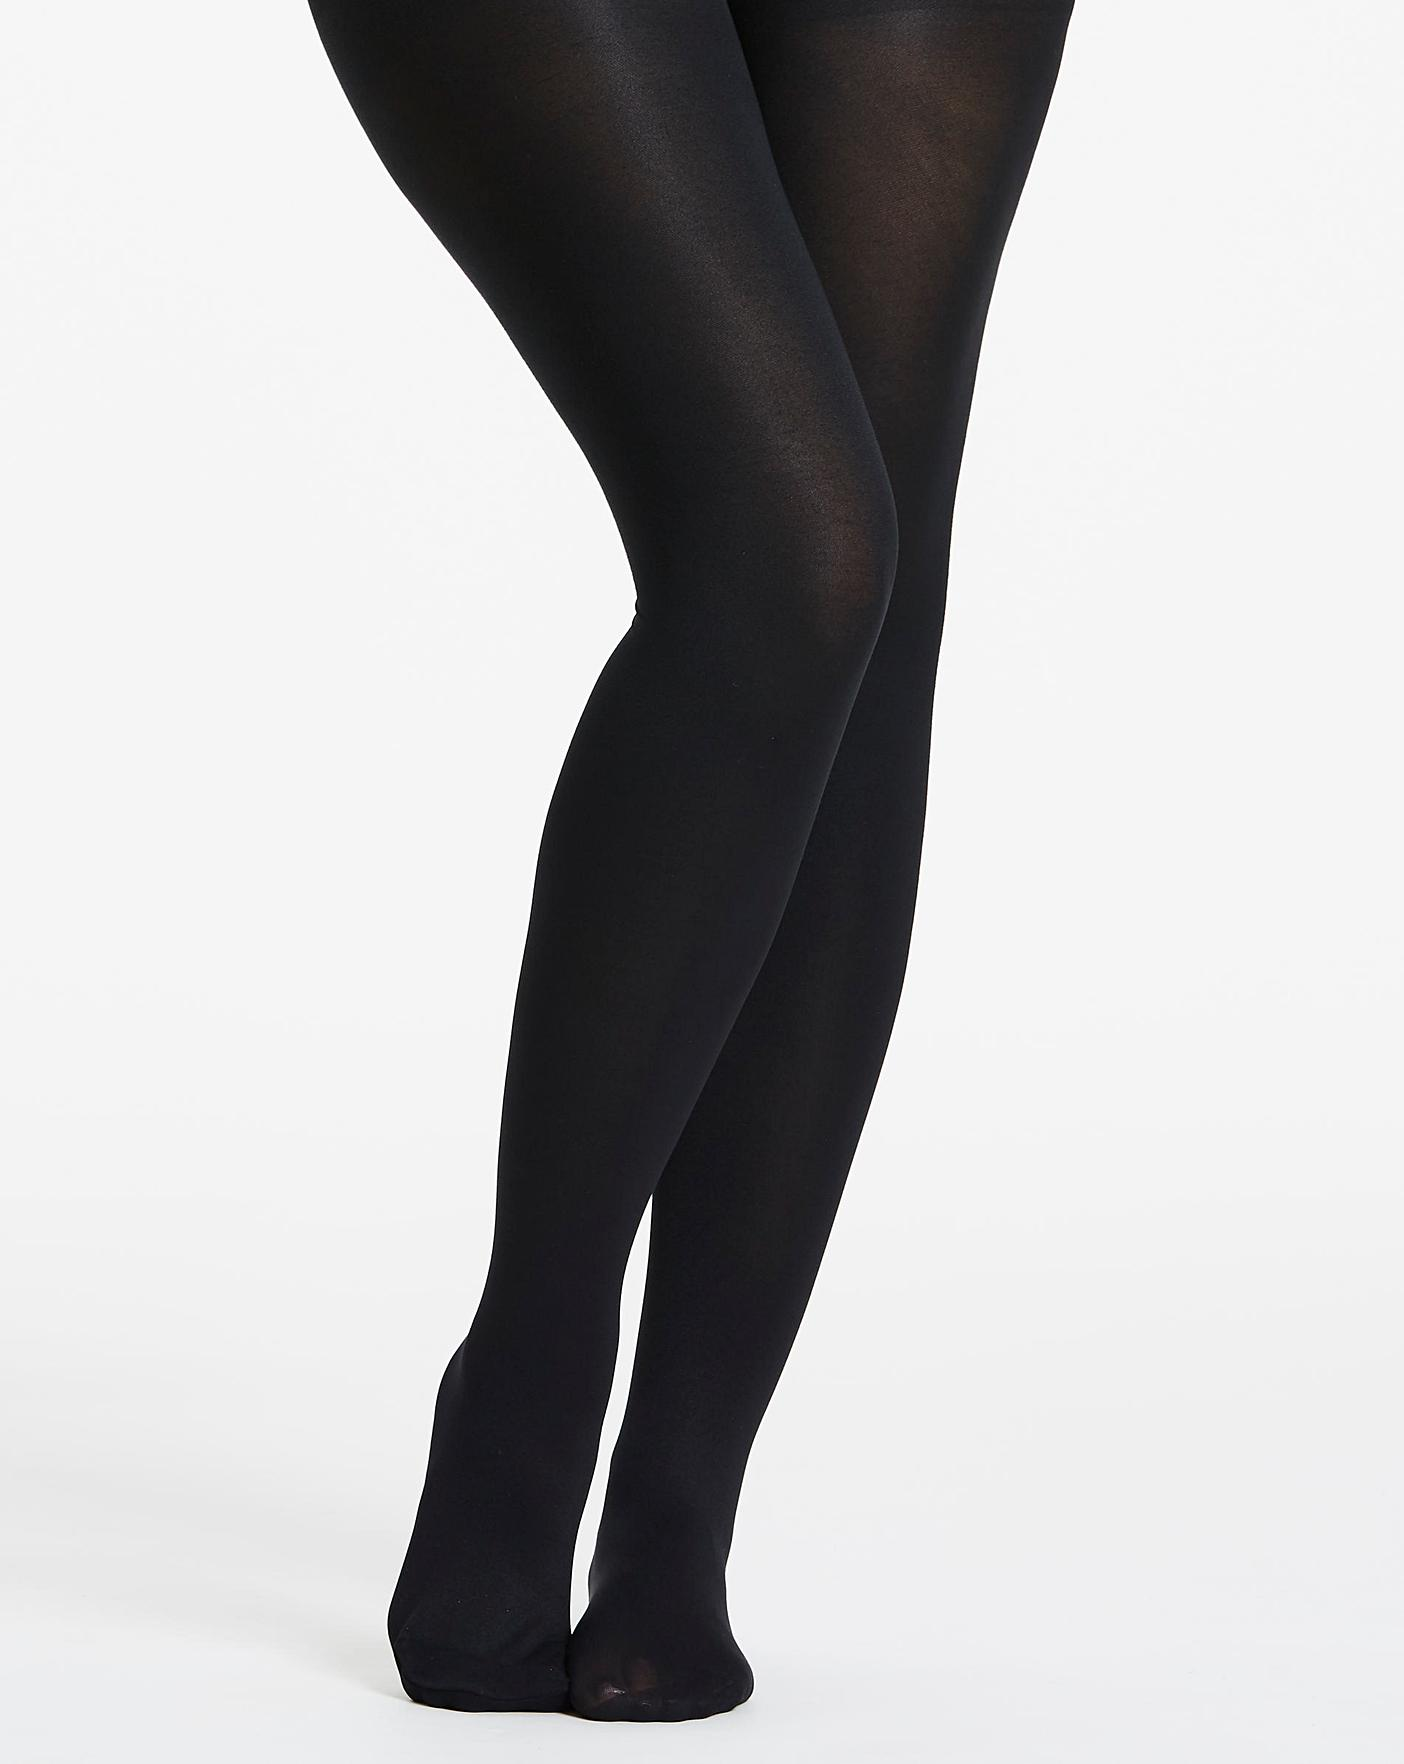 a176a2ce461 Pretty Polly Curves Op Cooling Tights